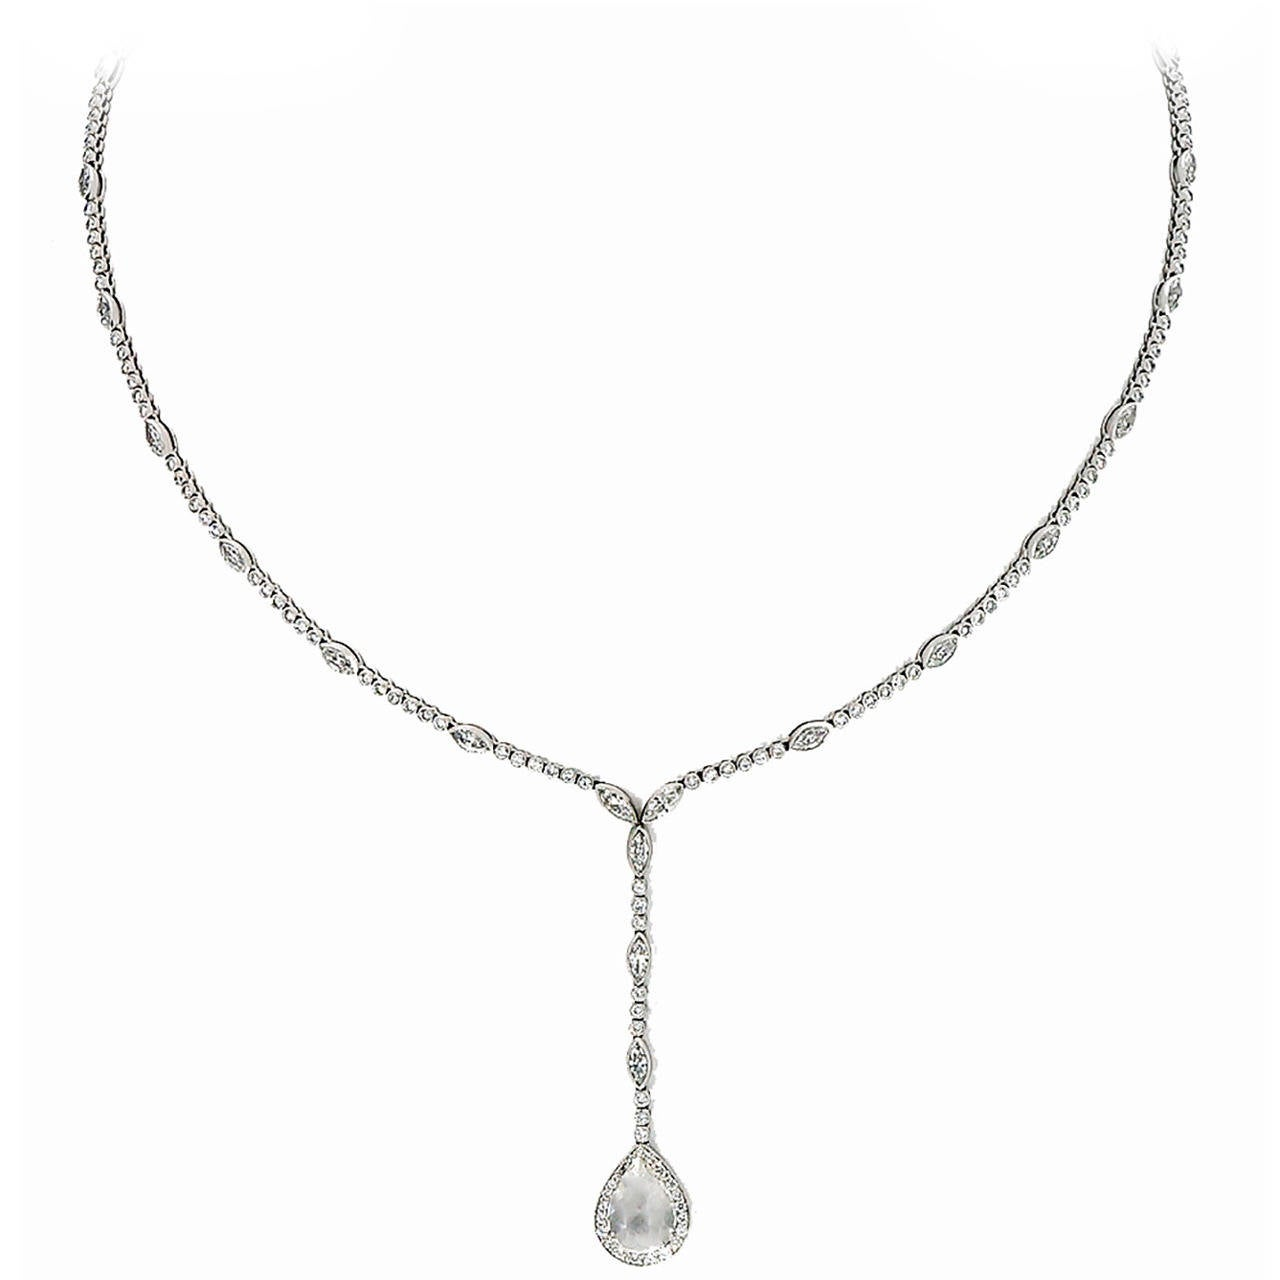 Solid Platinum handmade hinged link necklace with over 200 diamonds of fine white F plus color and VS plus clarity hand set in Milgrain bead set tubes or bezels with a fine oval low prong set, rose cut catch and a pear shaped rose cut halo at the